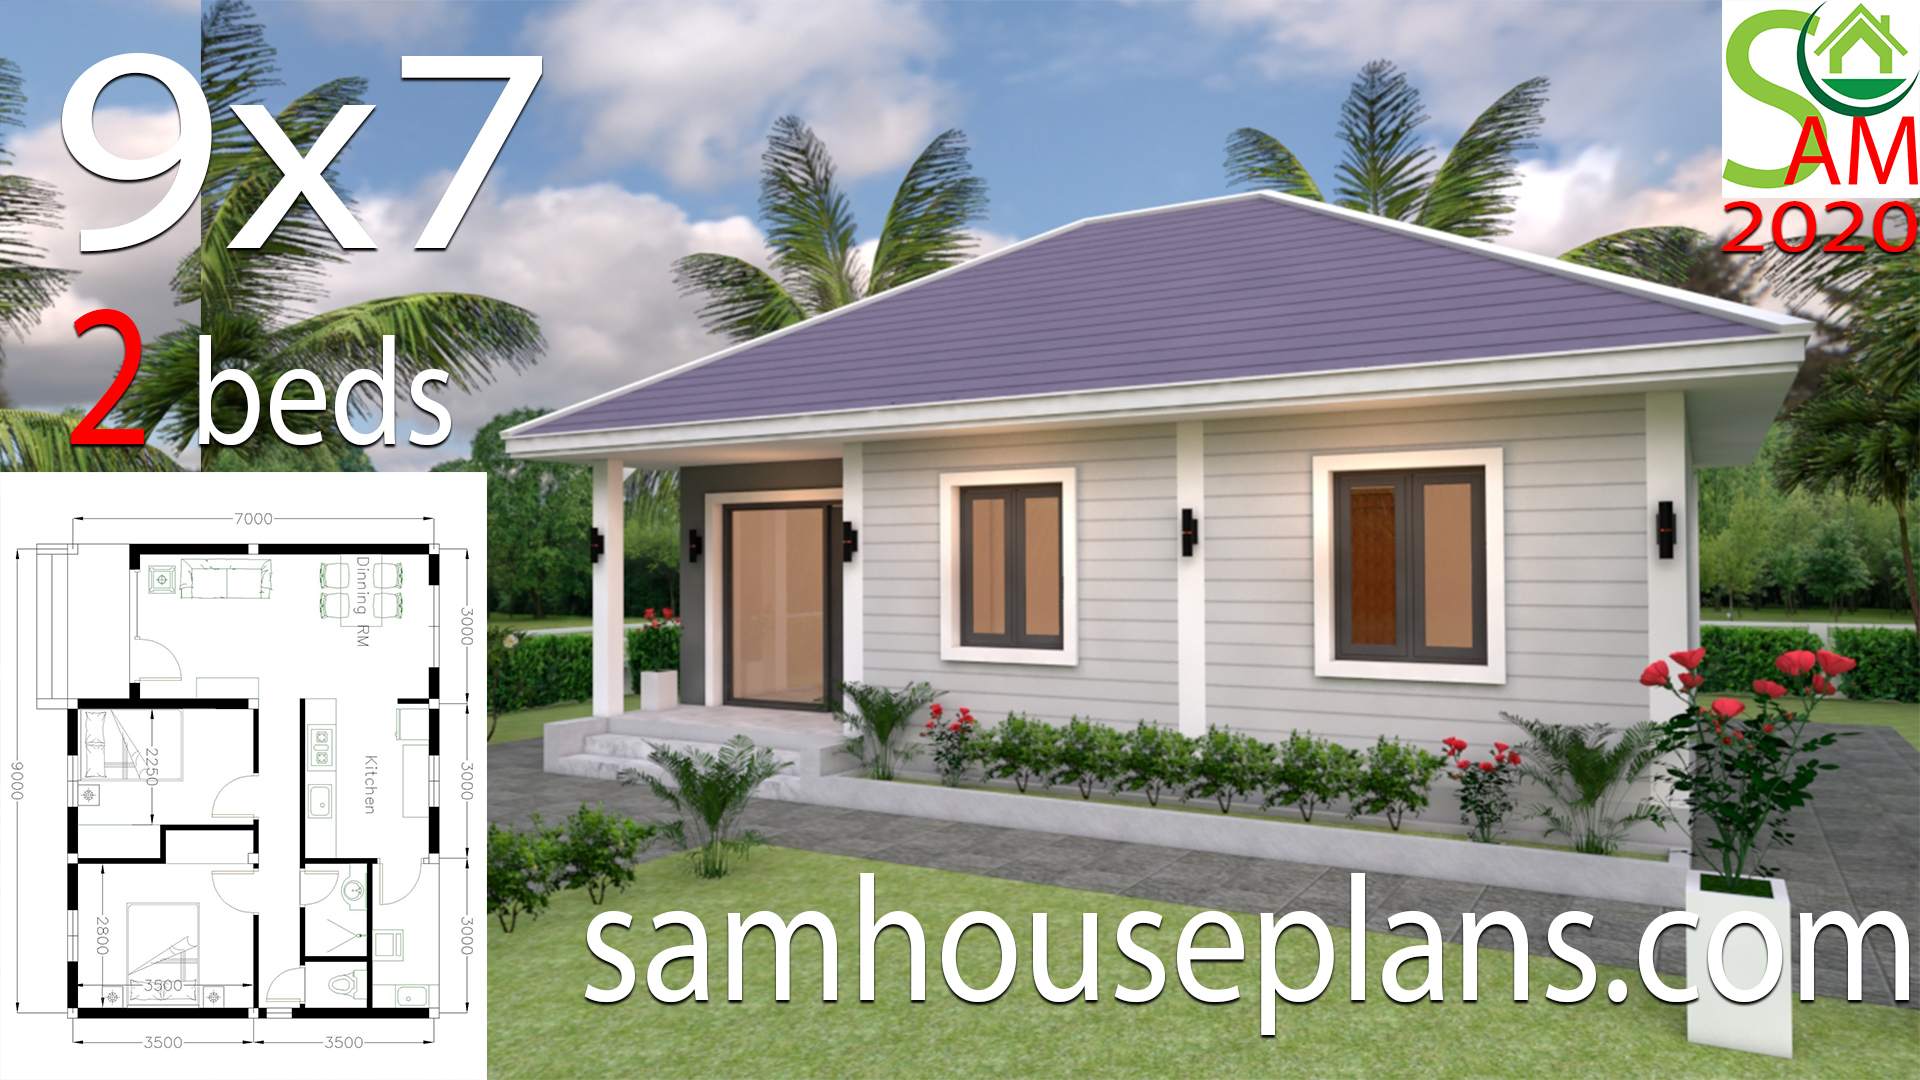 Small House Plans 9x7 With 2 Bedrooms Hip Roof Samhouseplans